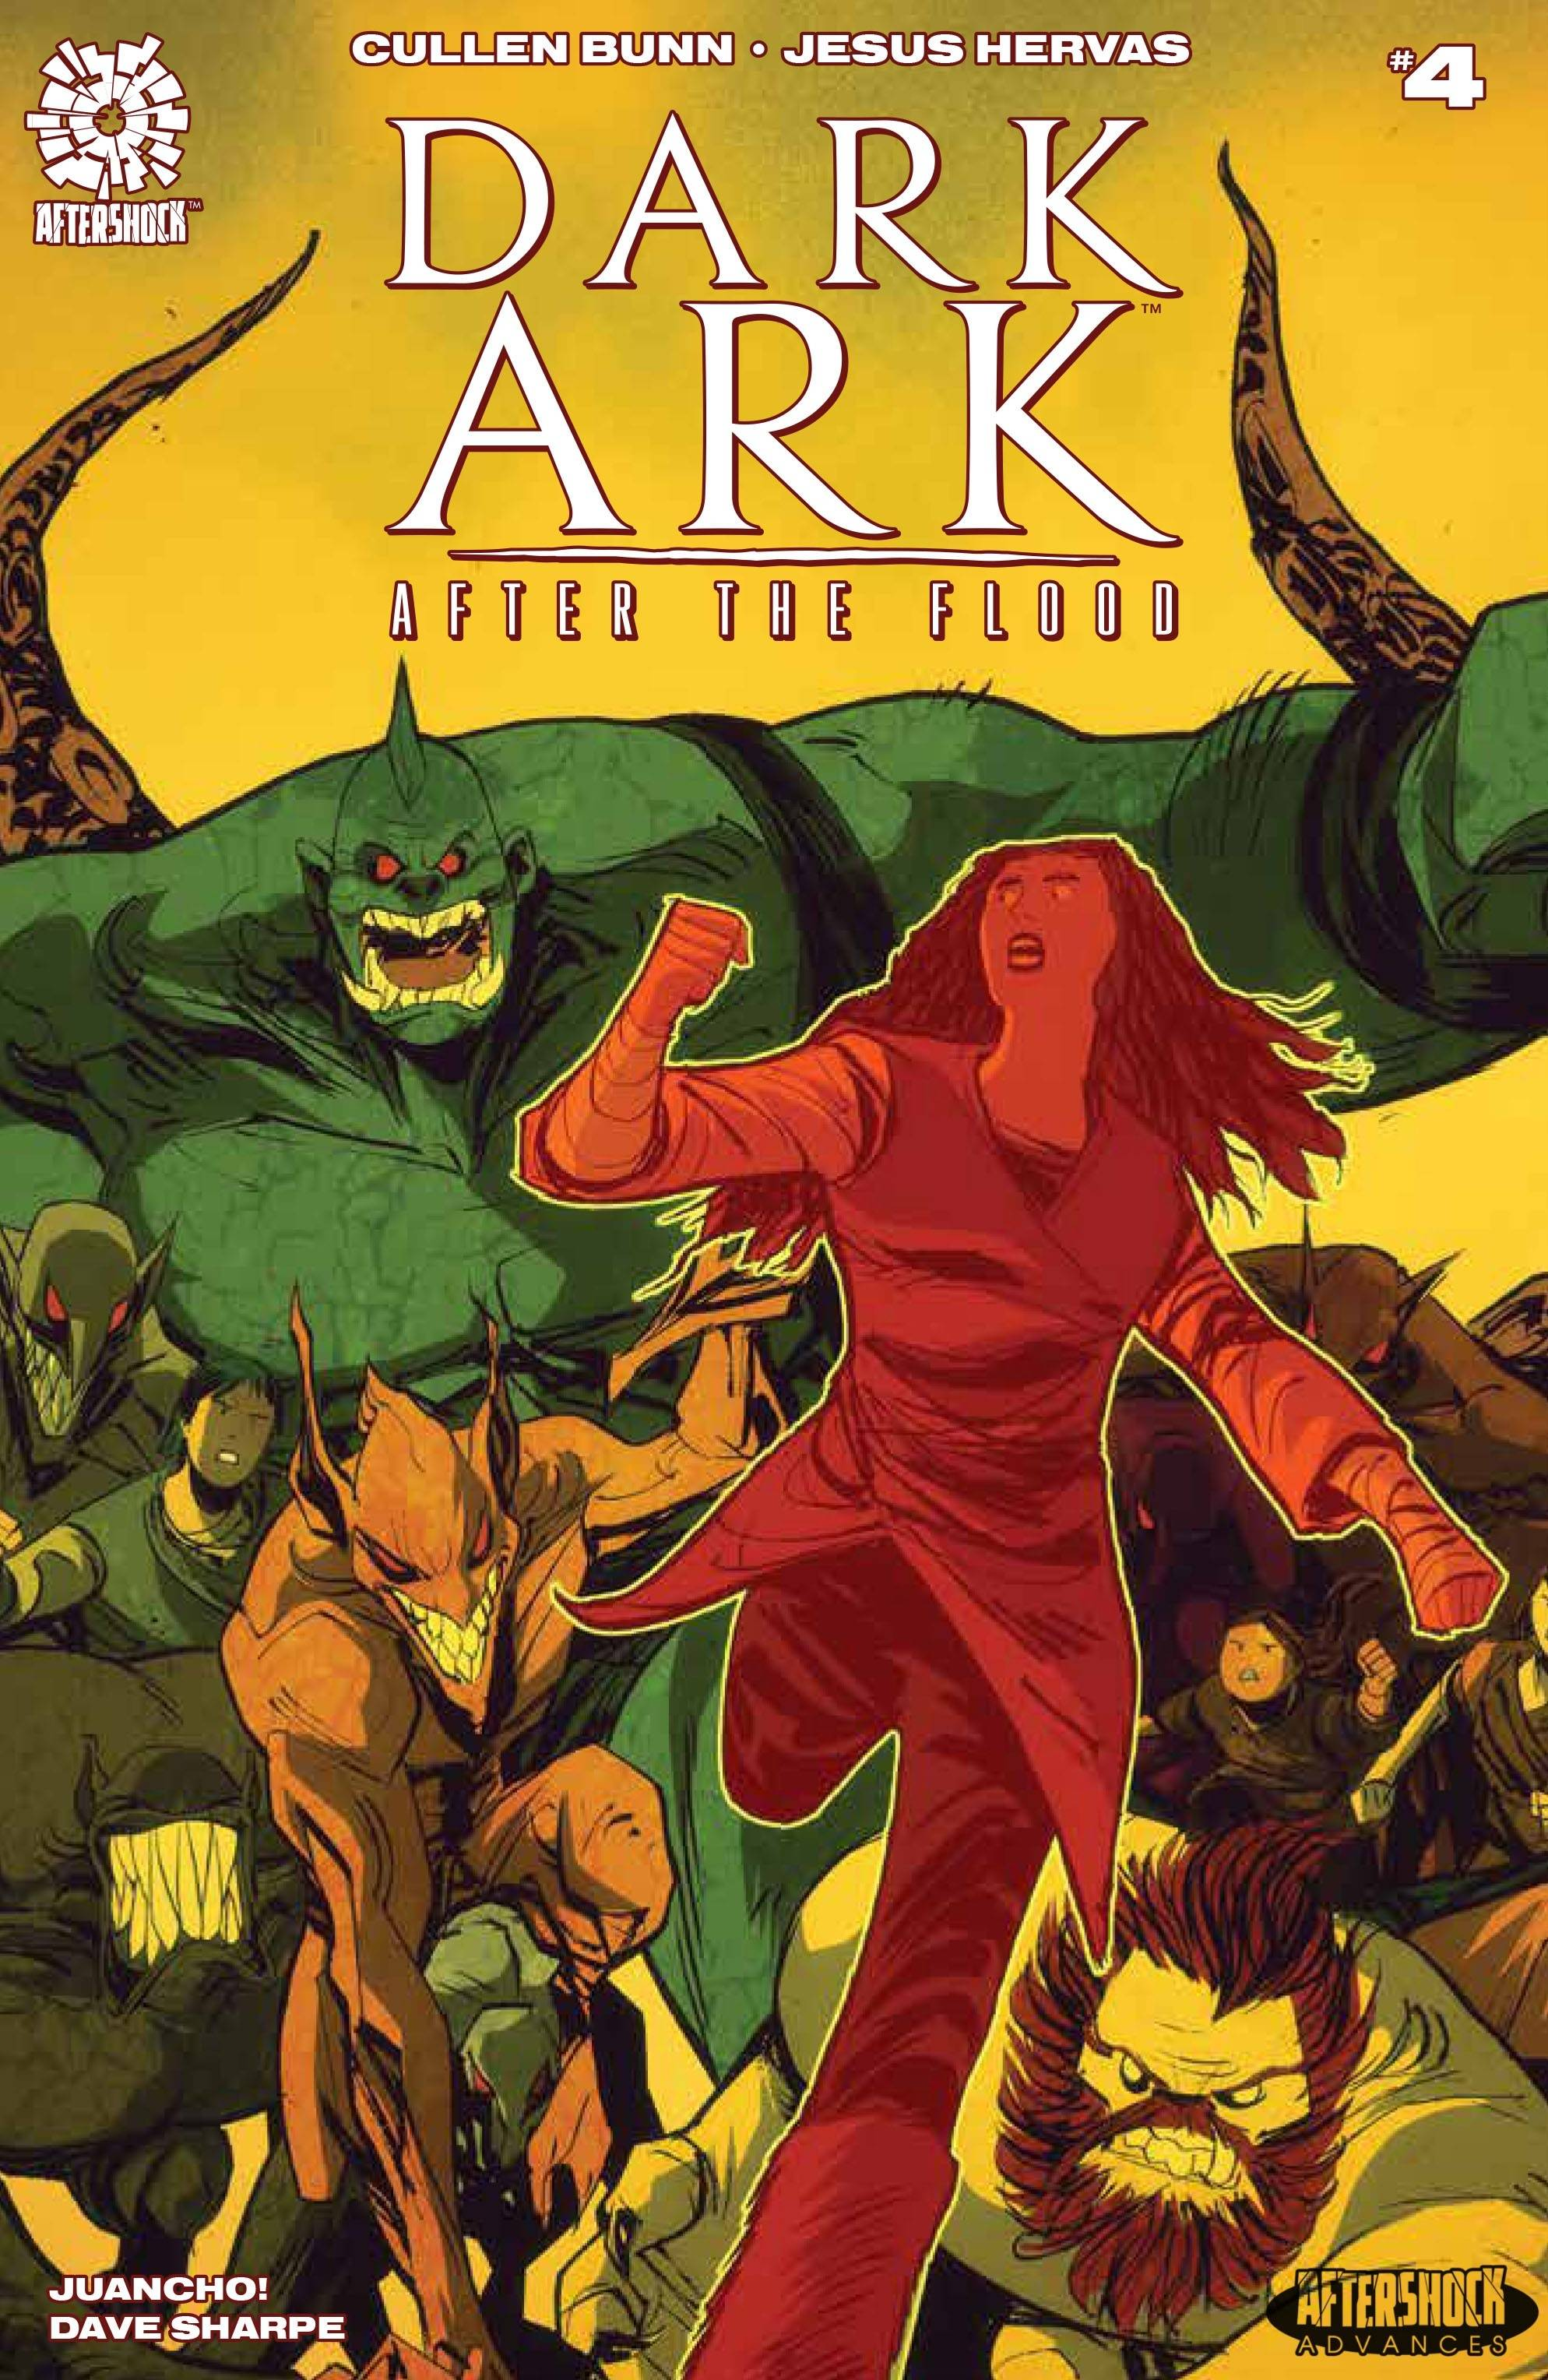 Dark Ark After the Flood #4